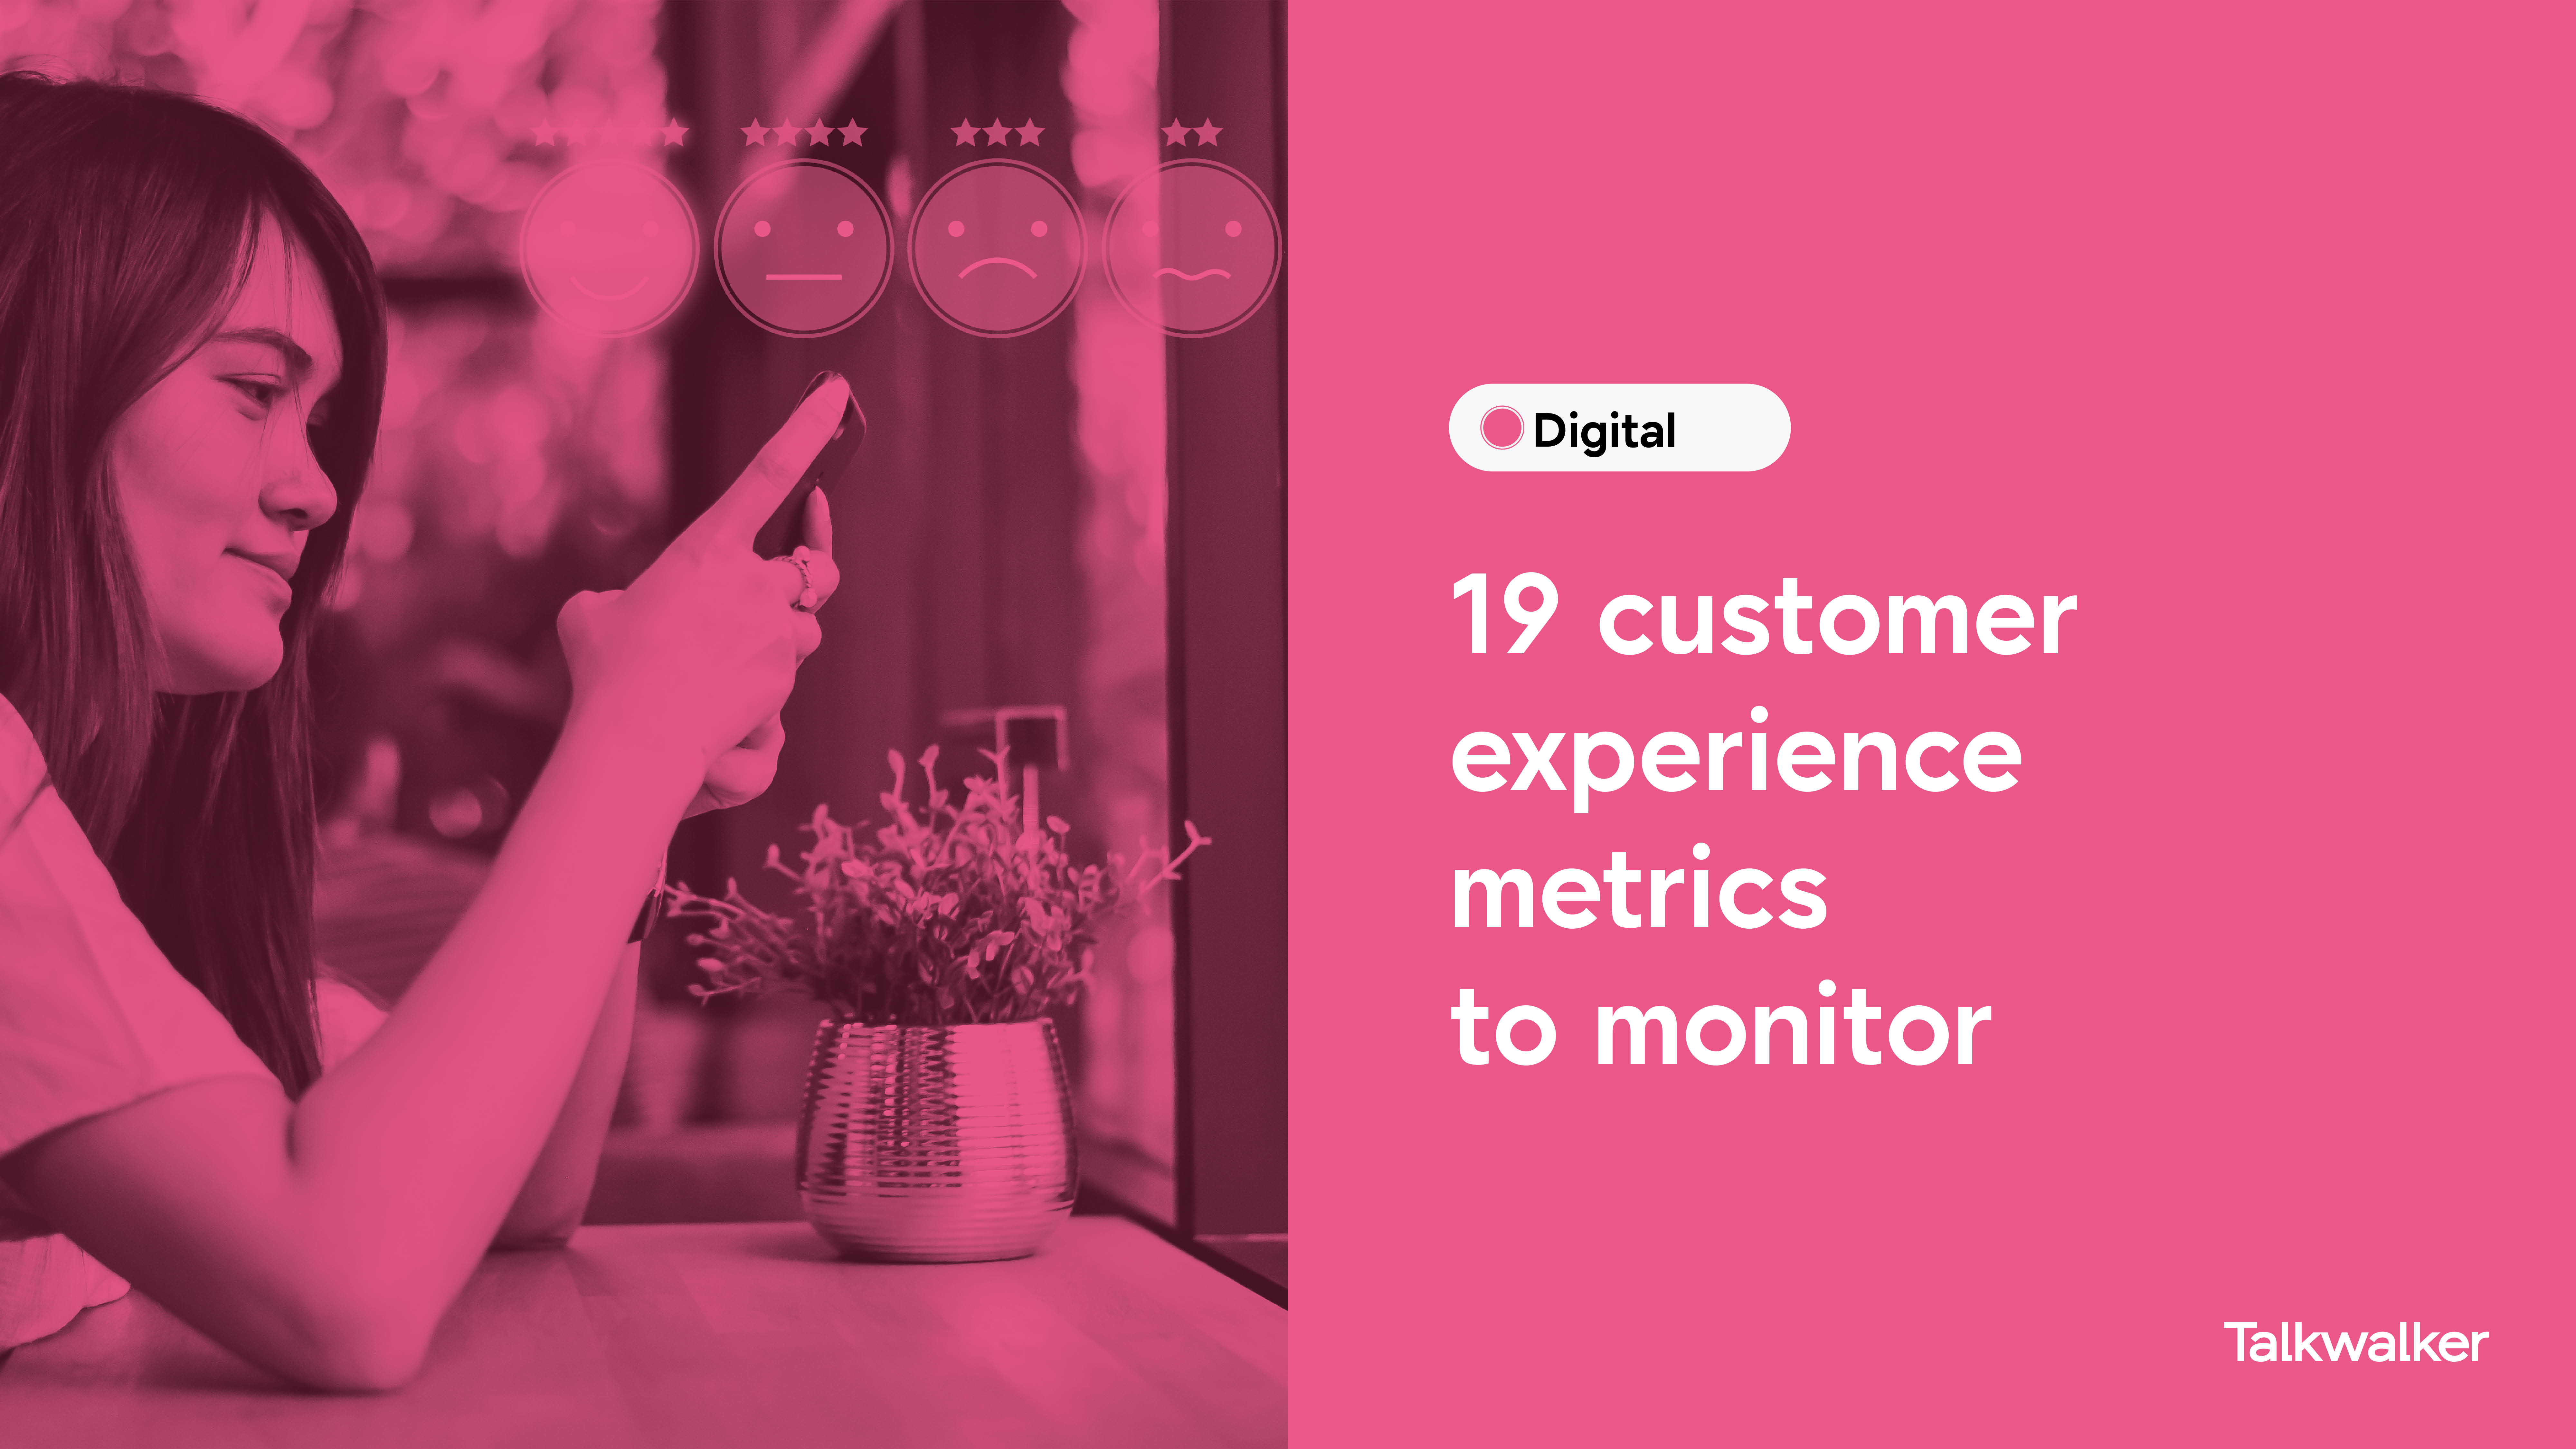 19 customer experience metrics to monitor - person using a smartphone to share a review, with emojis showing happy, sad, neutral emotion.